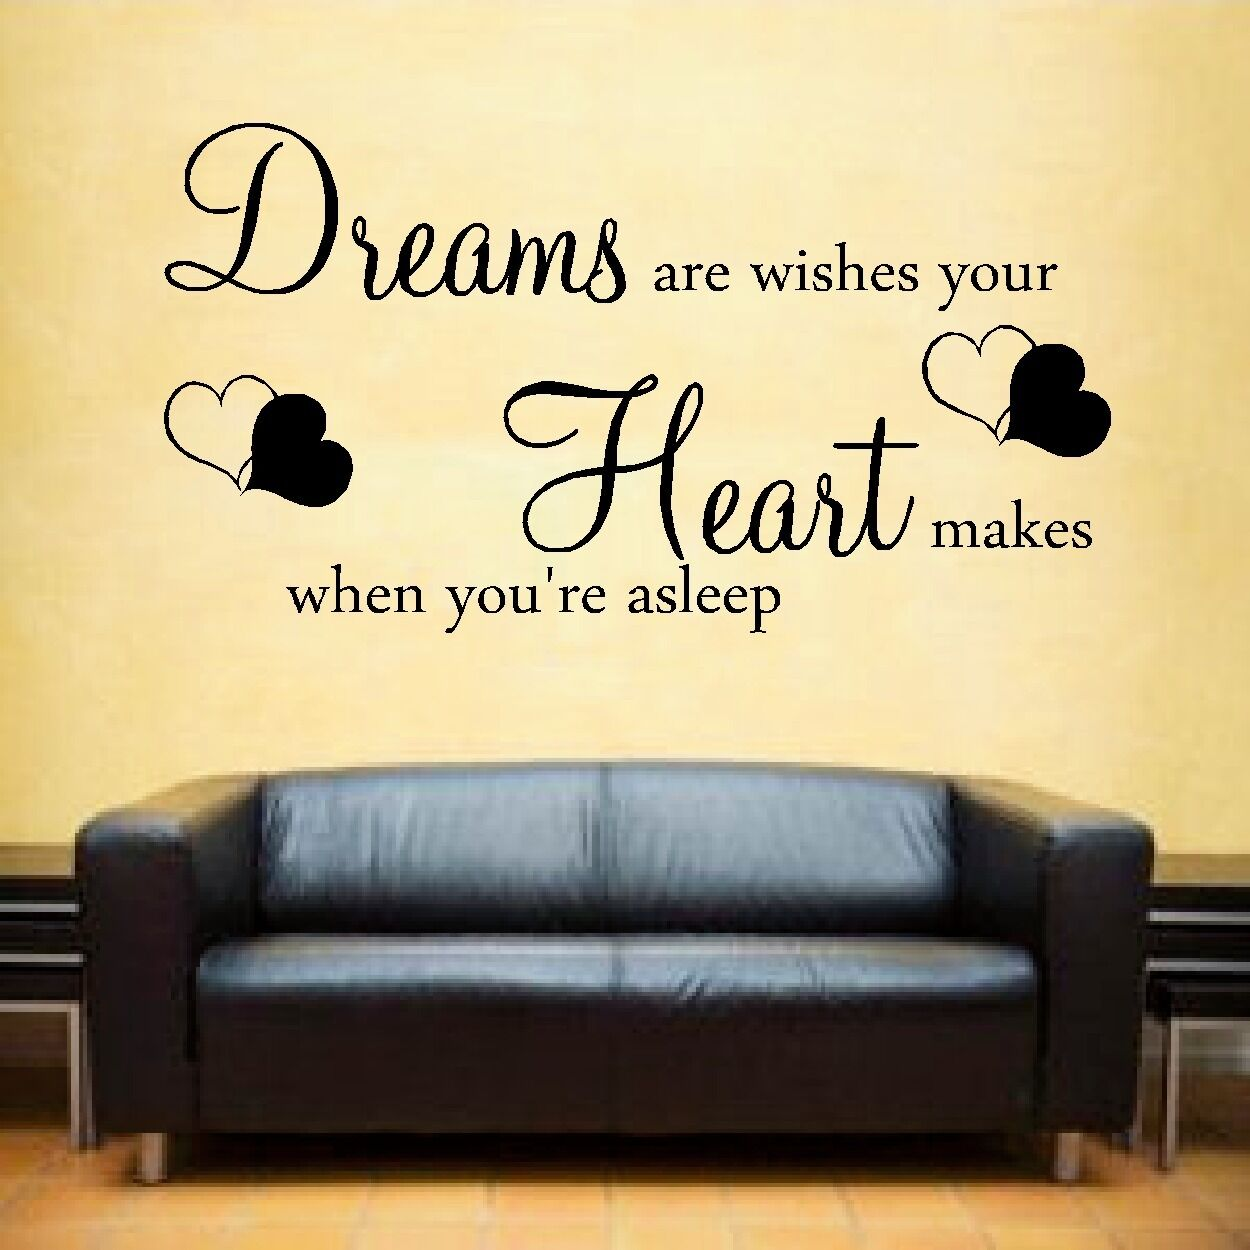 DREAMS are wishes Wall Art Sticker inspirational quote - £6.99 ...